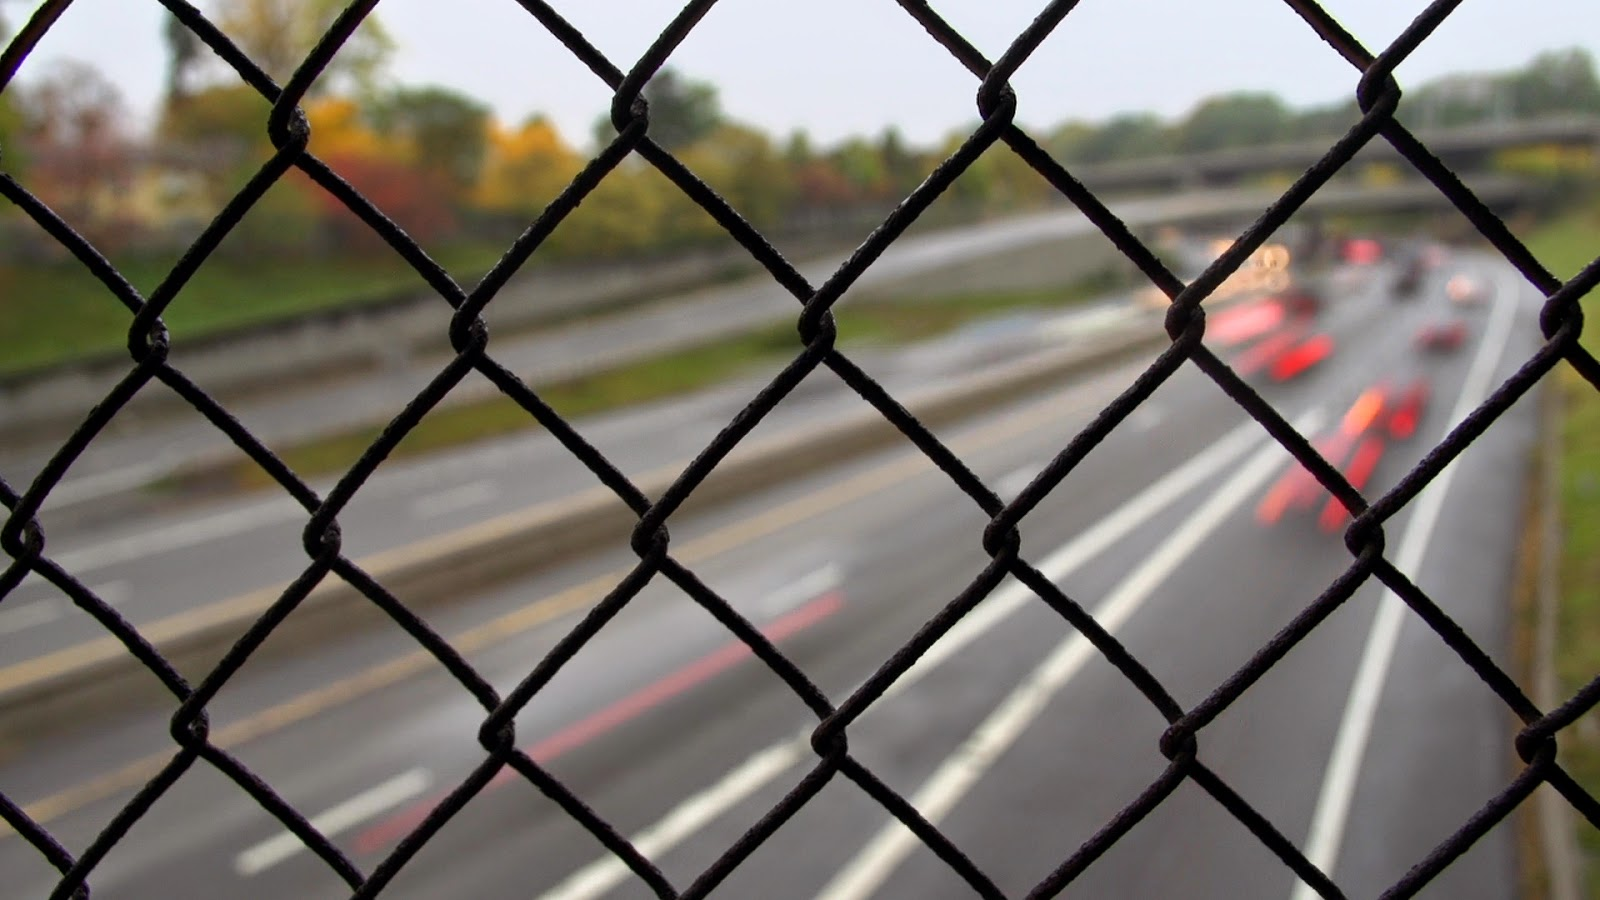 Fenced Highway